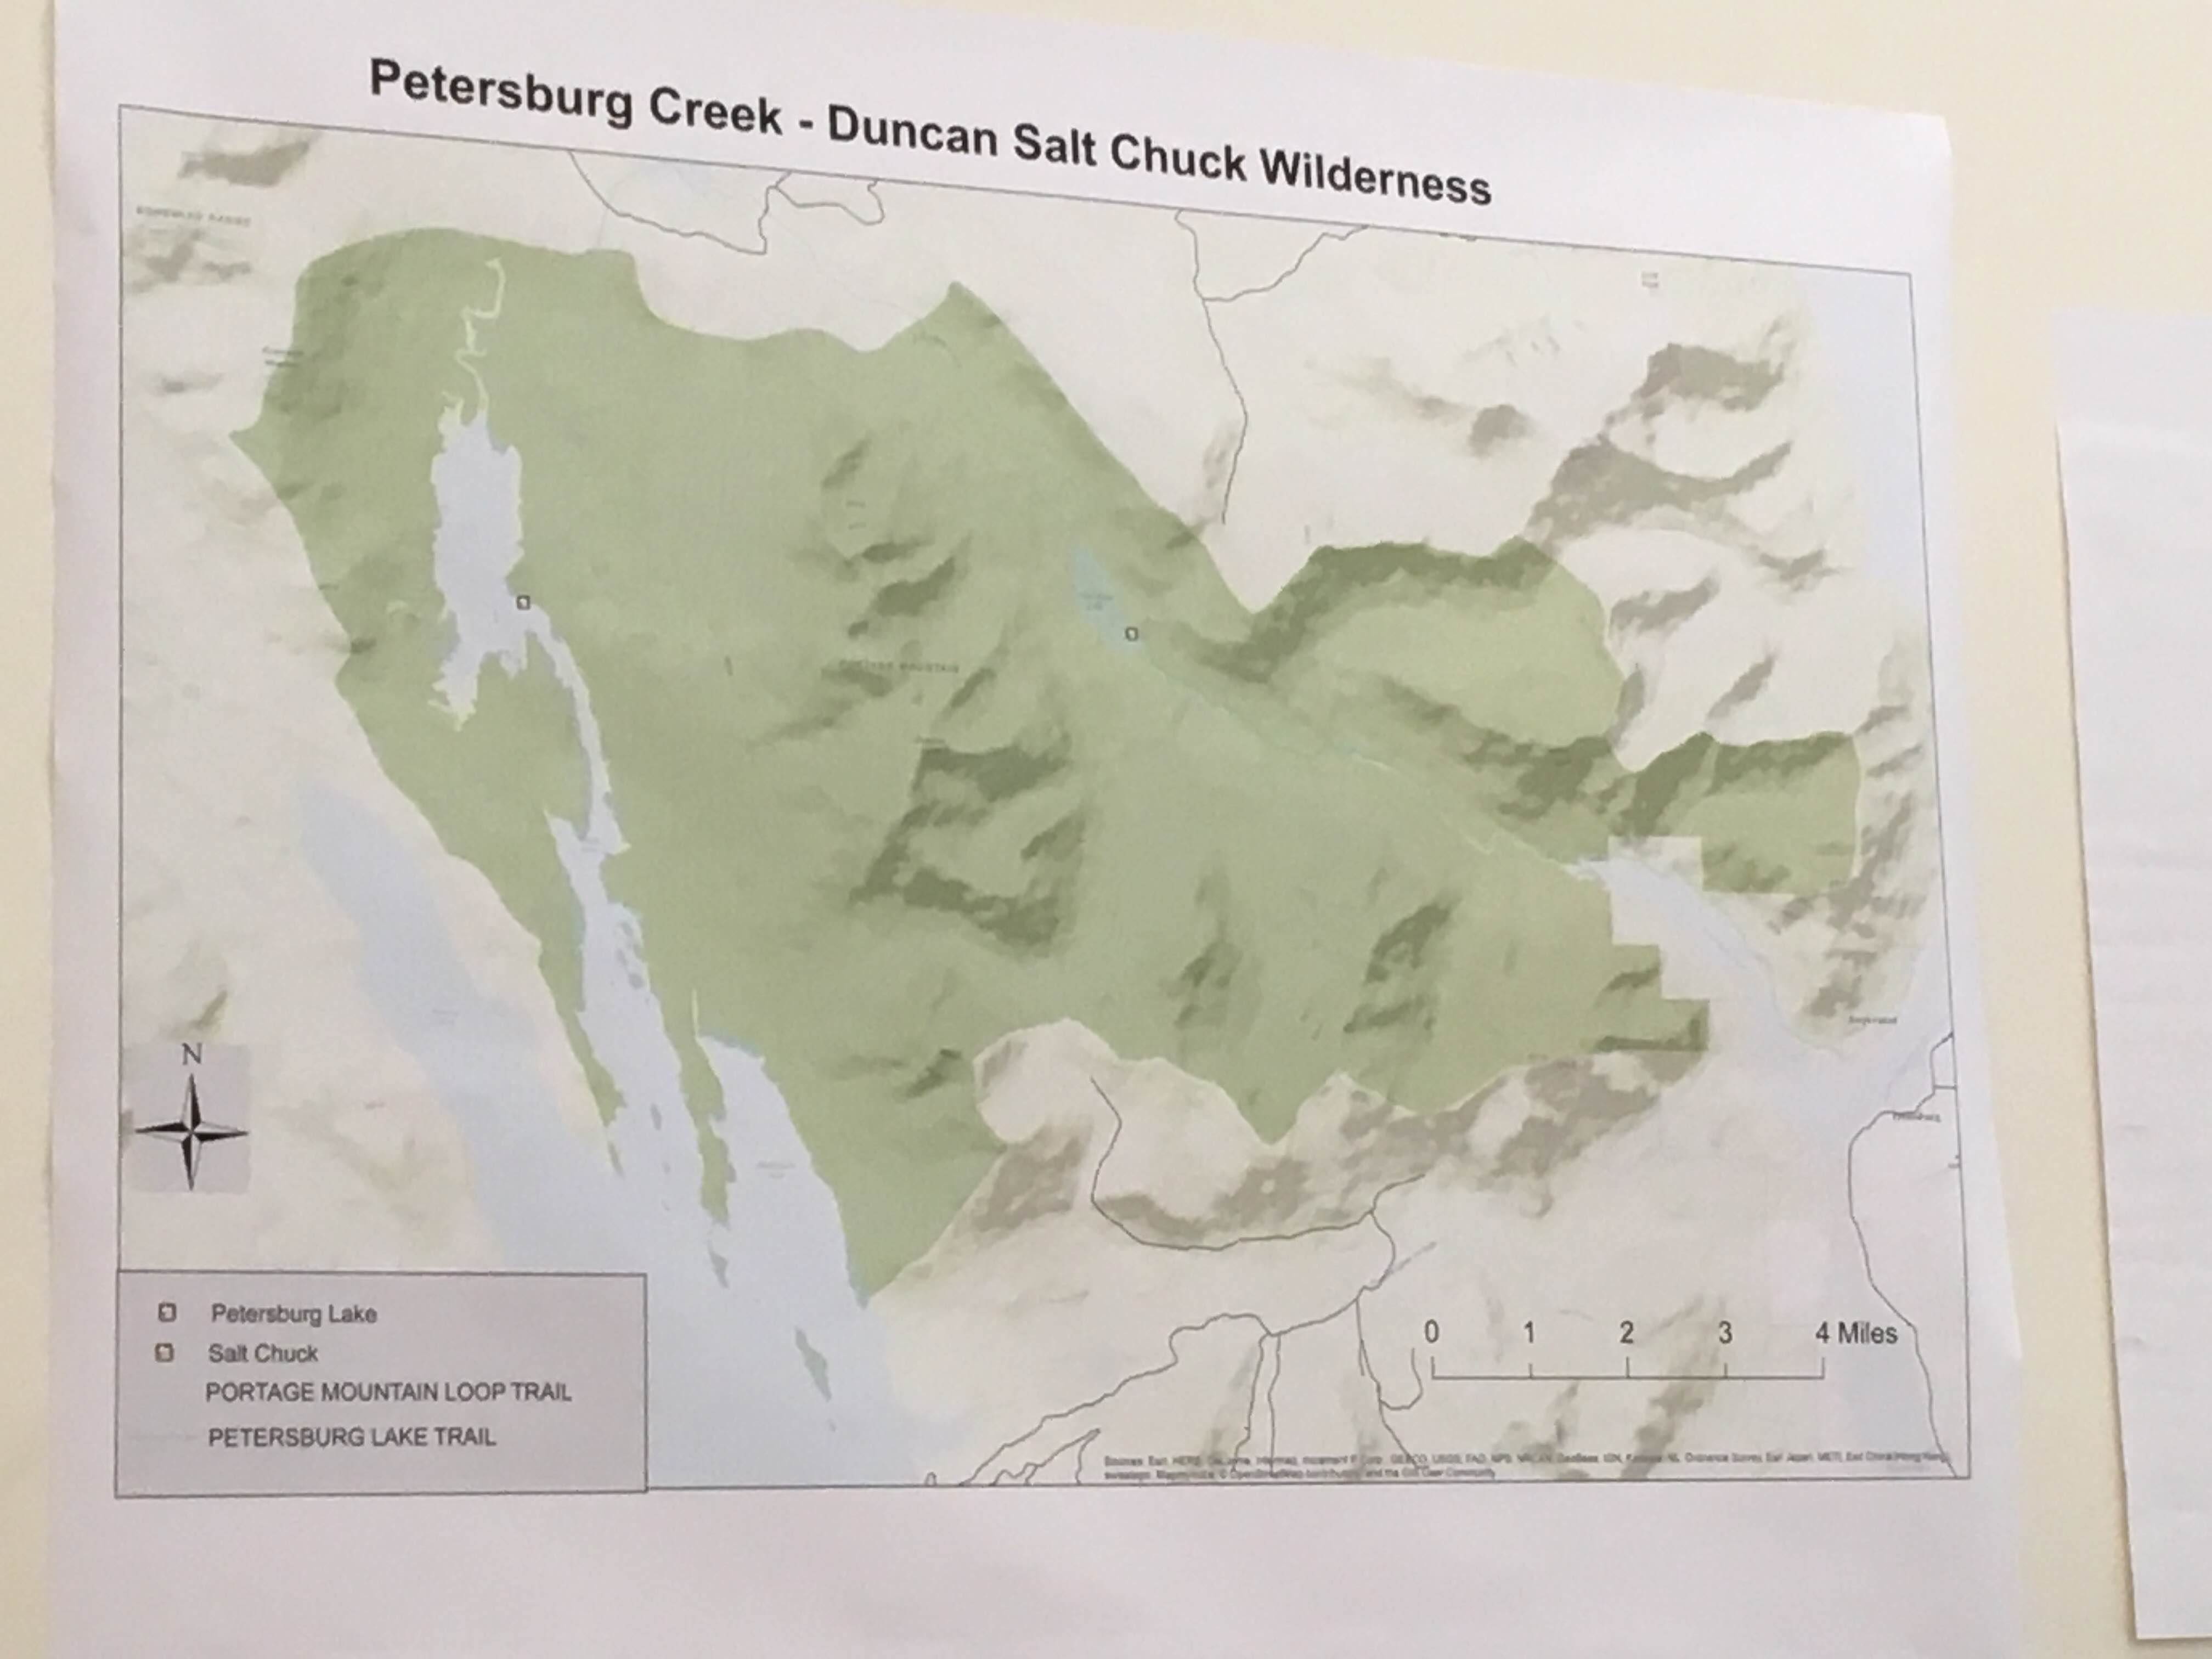 Petersburg community joins discussion on local wilderness area